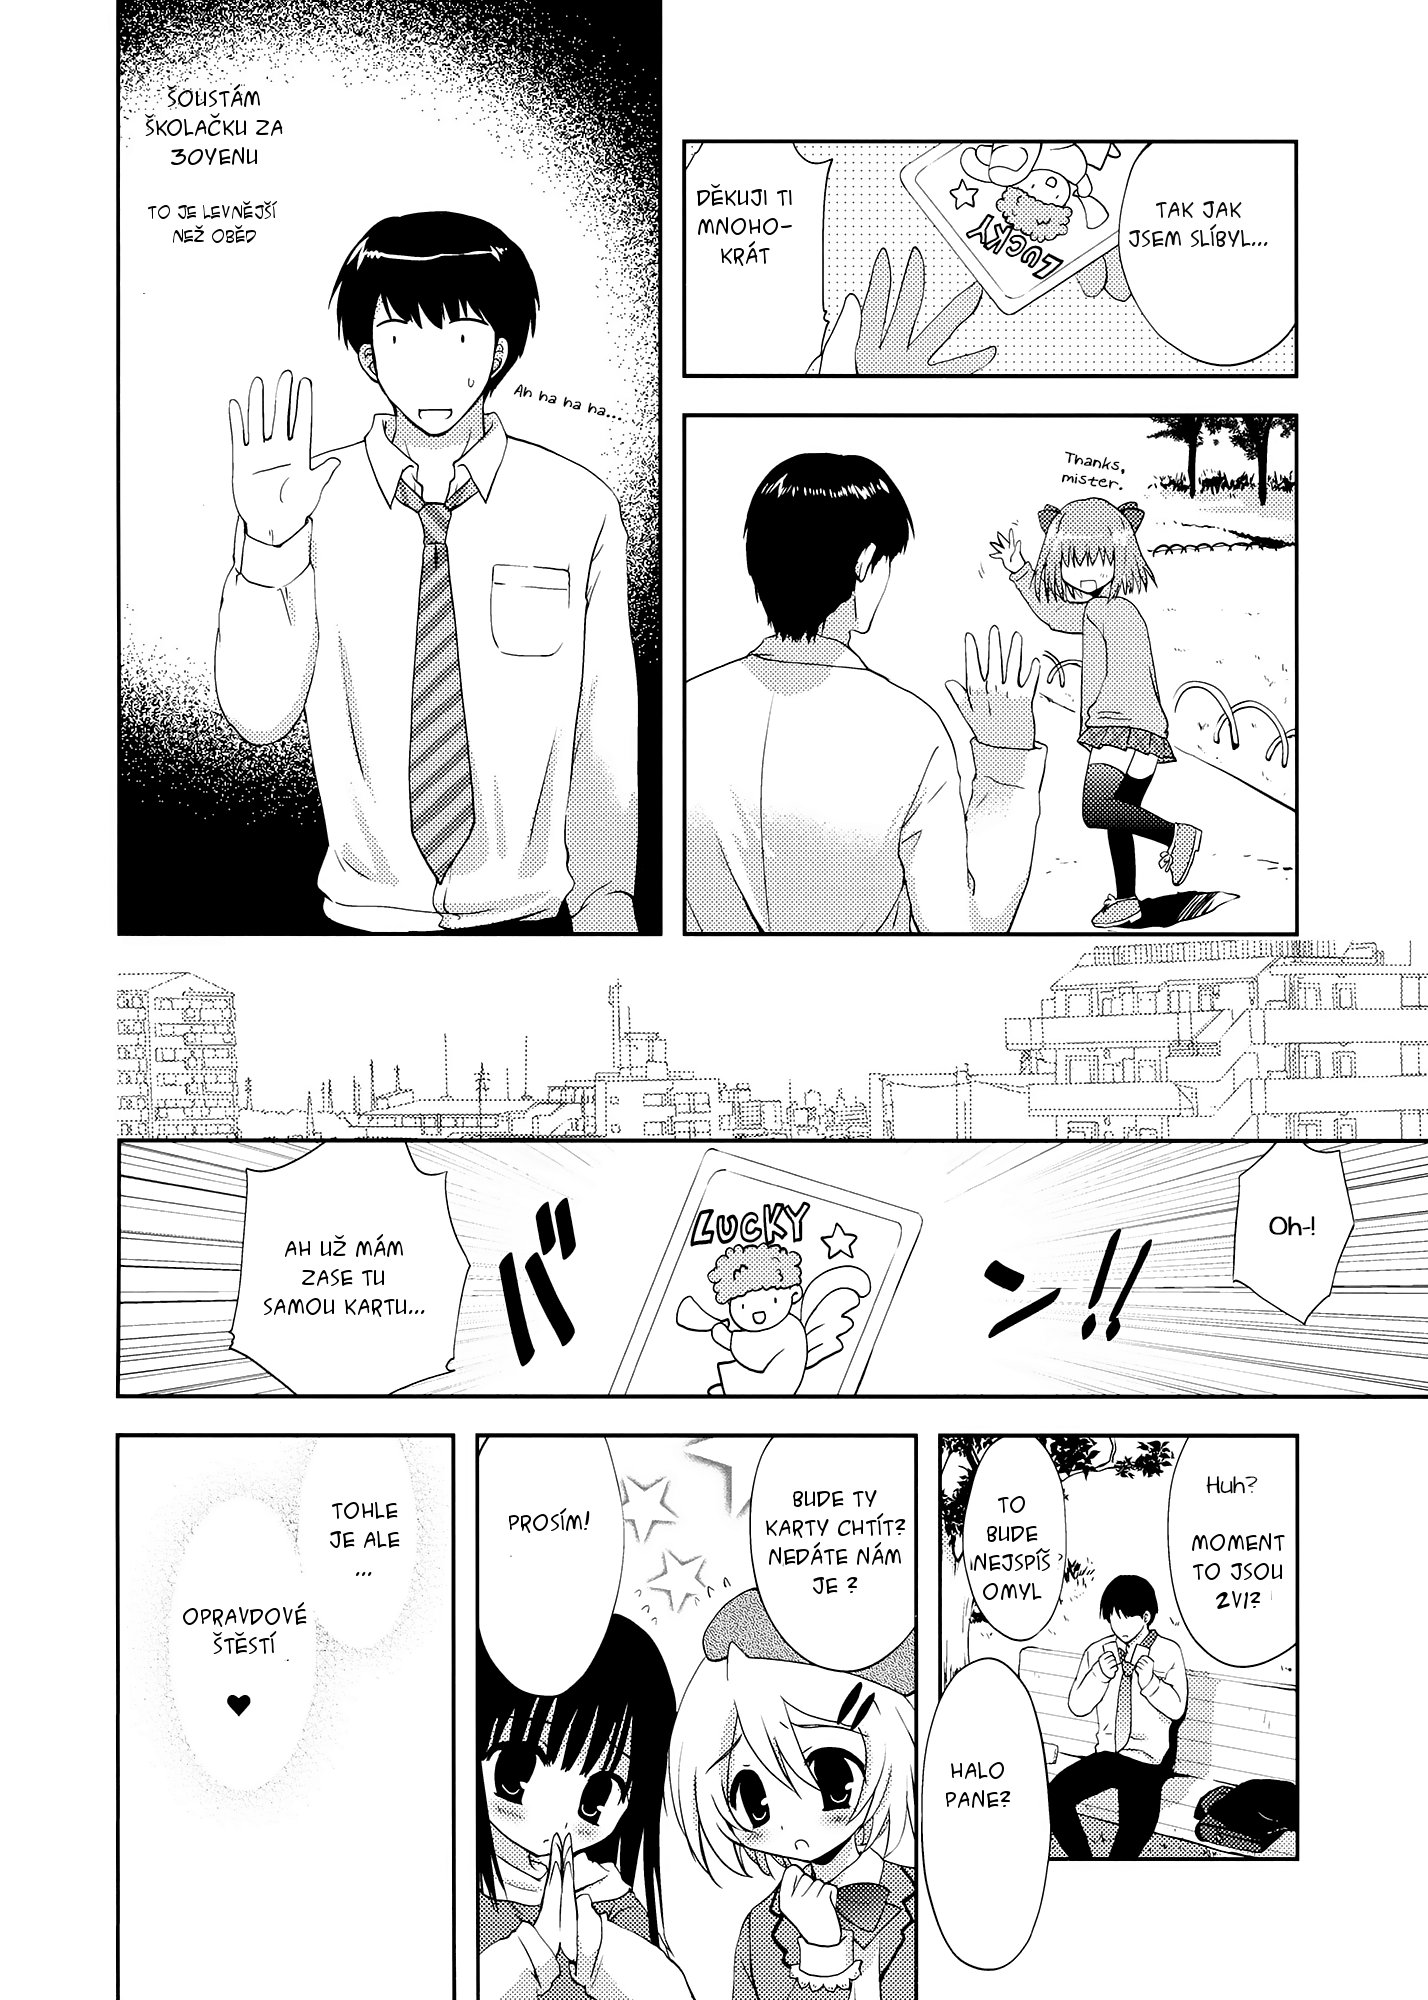 Doki The Story Of How I Did It With An Elementary Schooler For Only 30 Yen Original Page 08